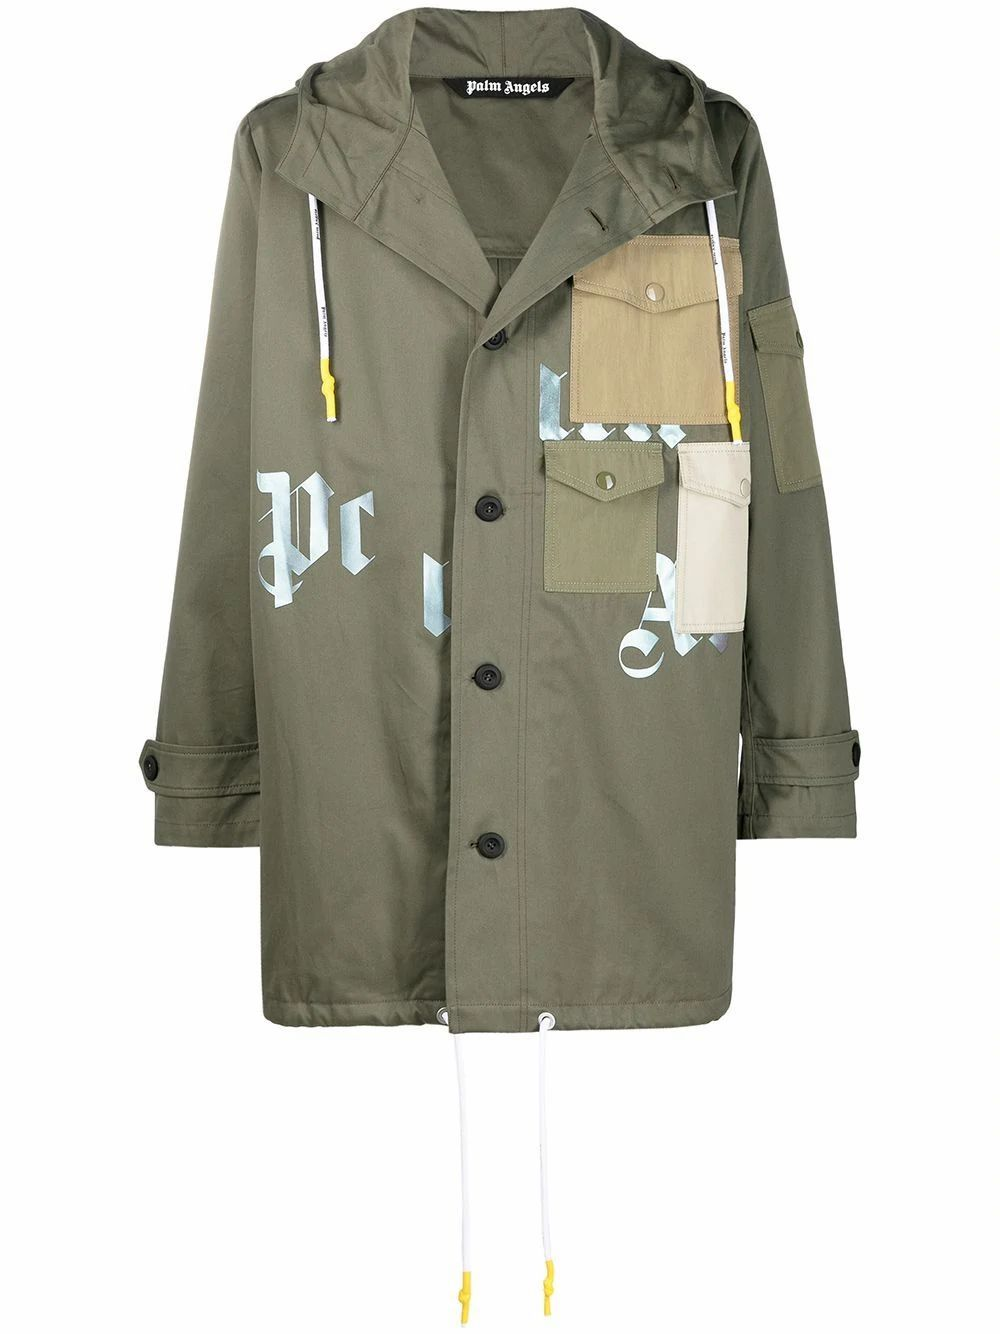 Palm Angels PALM ANGELS MEN'S GREEN COTTON OUTERWEAR JACKET